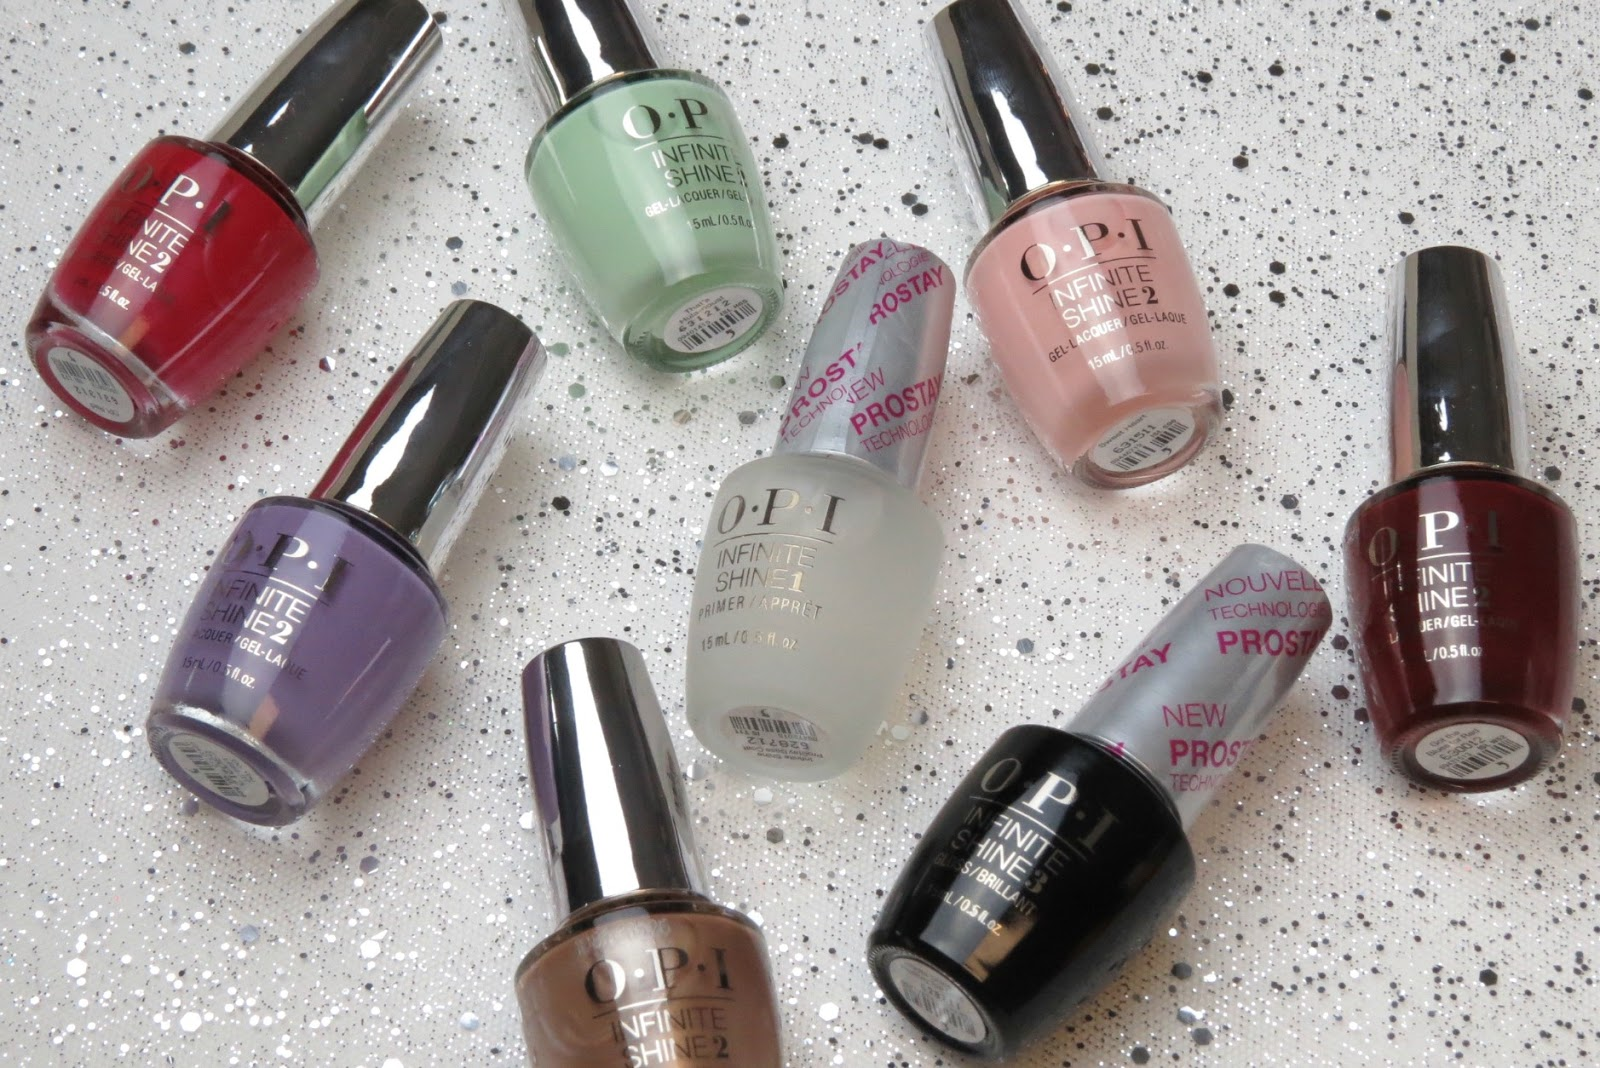 New In: OPI Infinite Shine Iconic Shades & ProStay